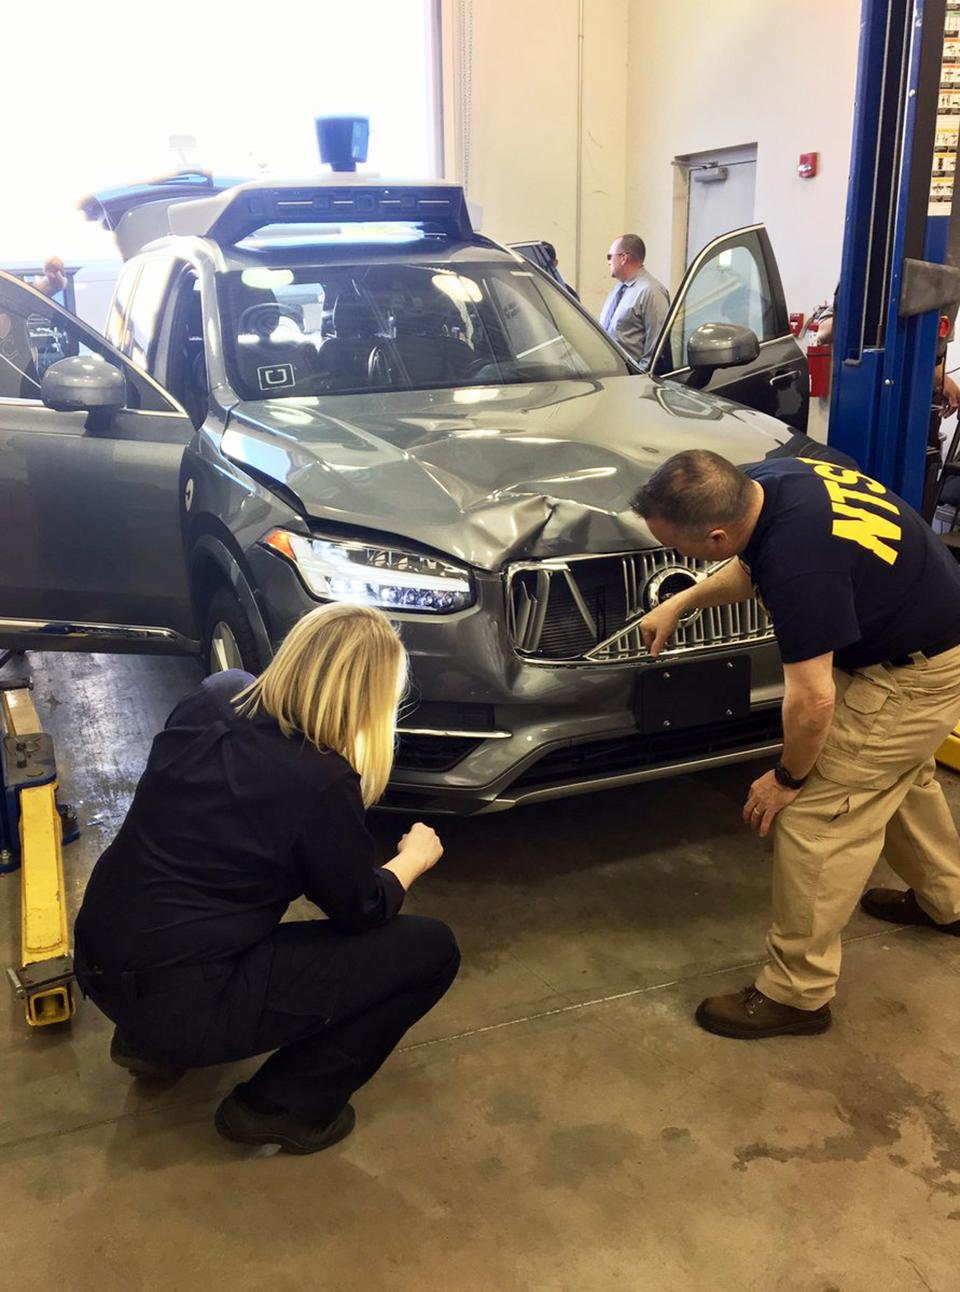 Self-Driving Vehicle Fatality Investigation